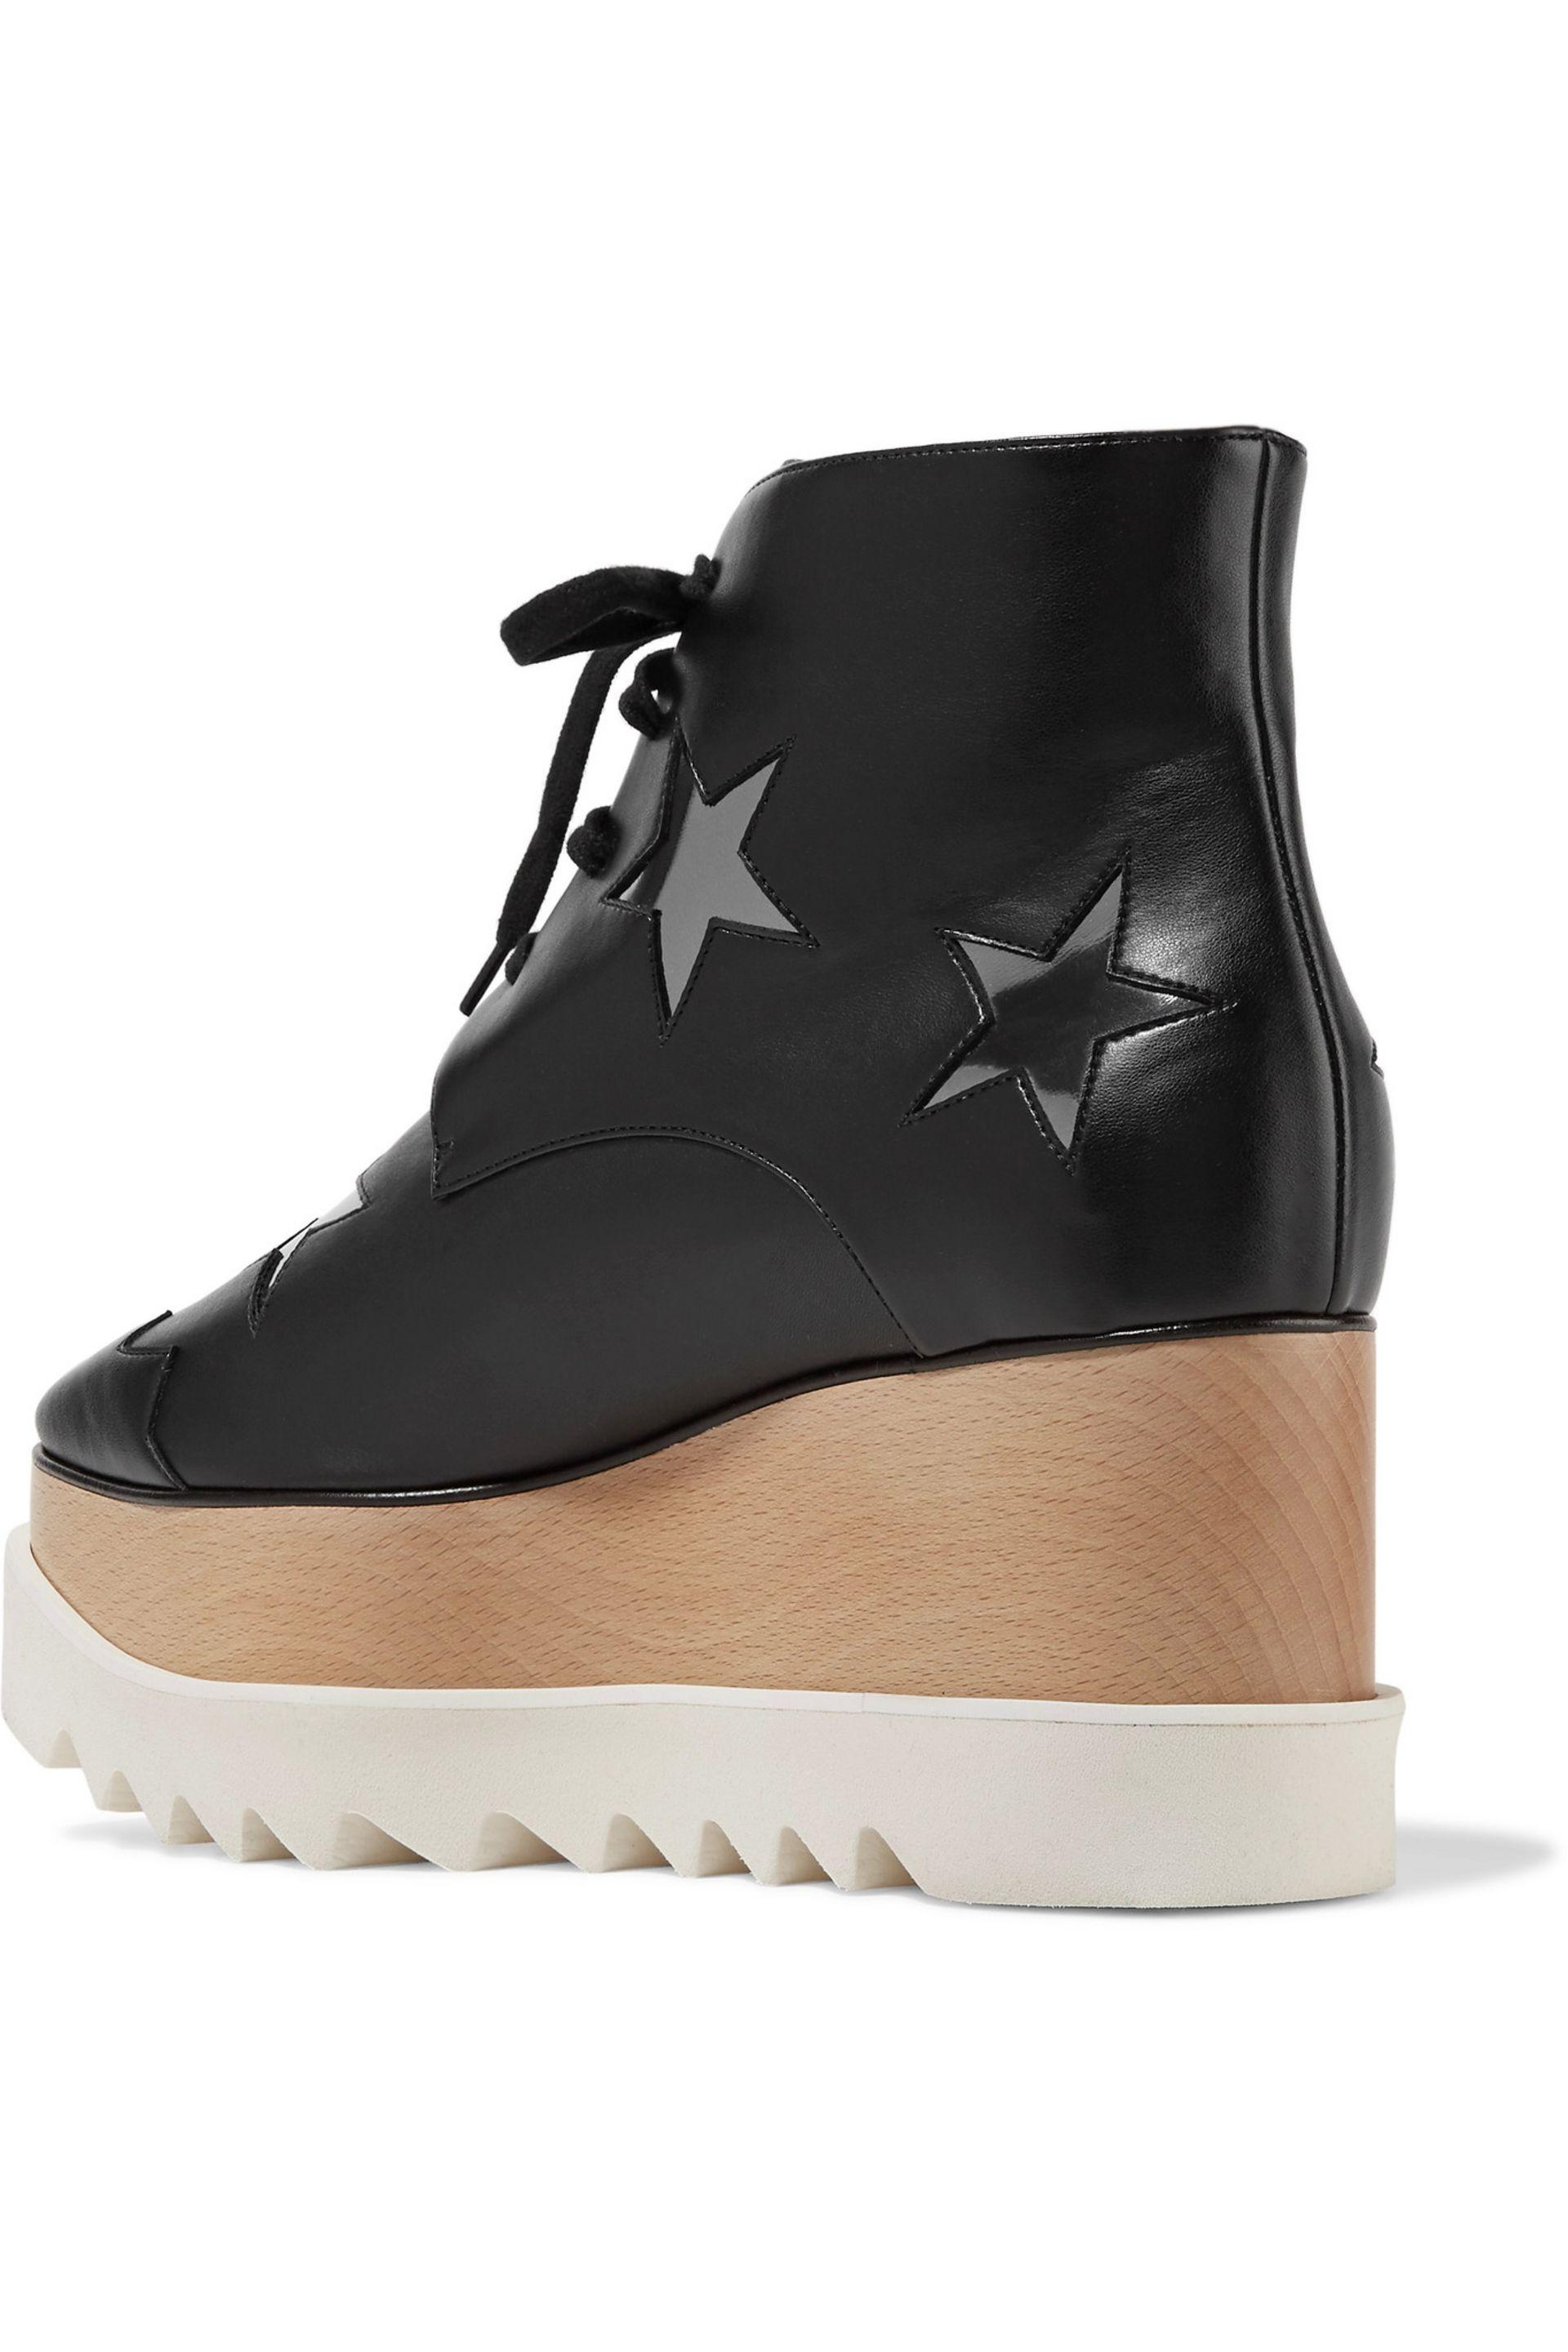 Stella McCartney Smooth boots